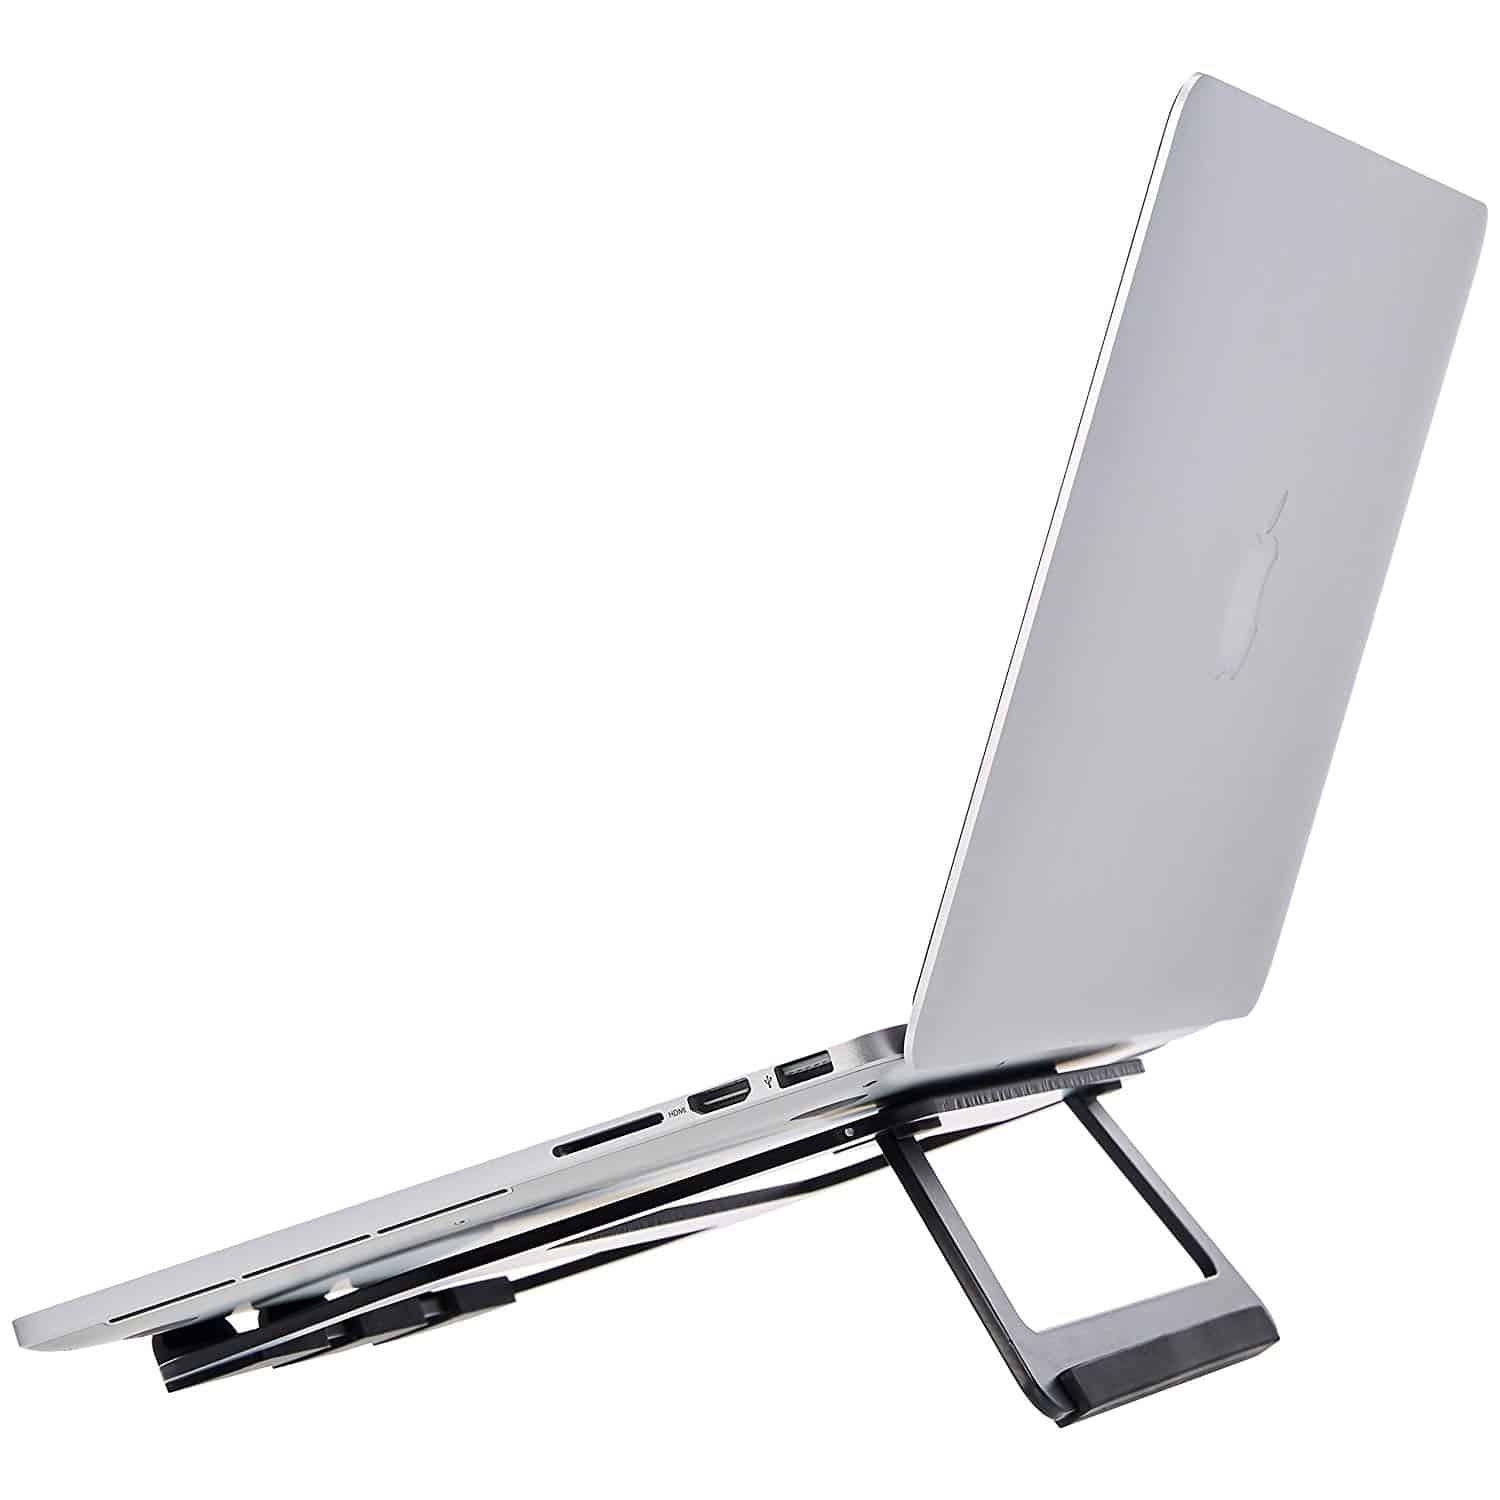 AmazonBasics Aluminum Portable Foldable Laptop Support Stand